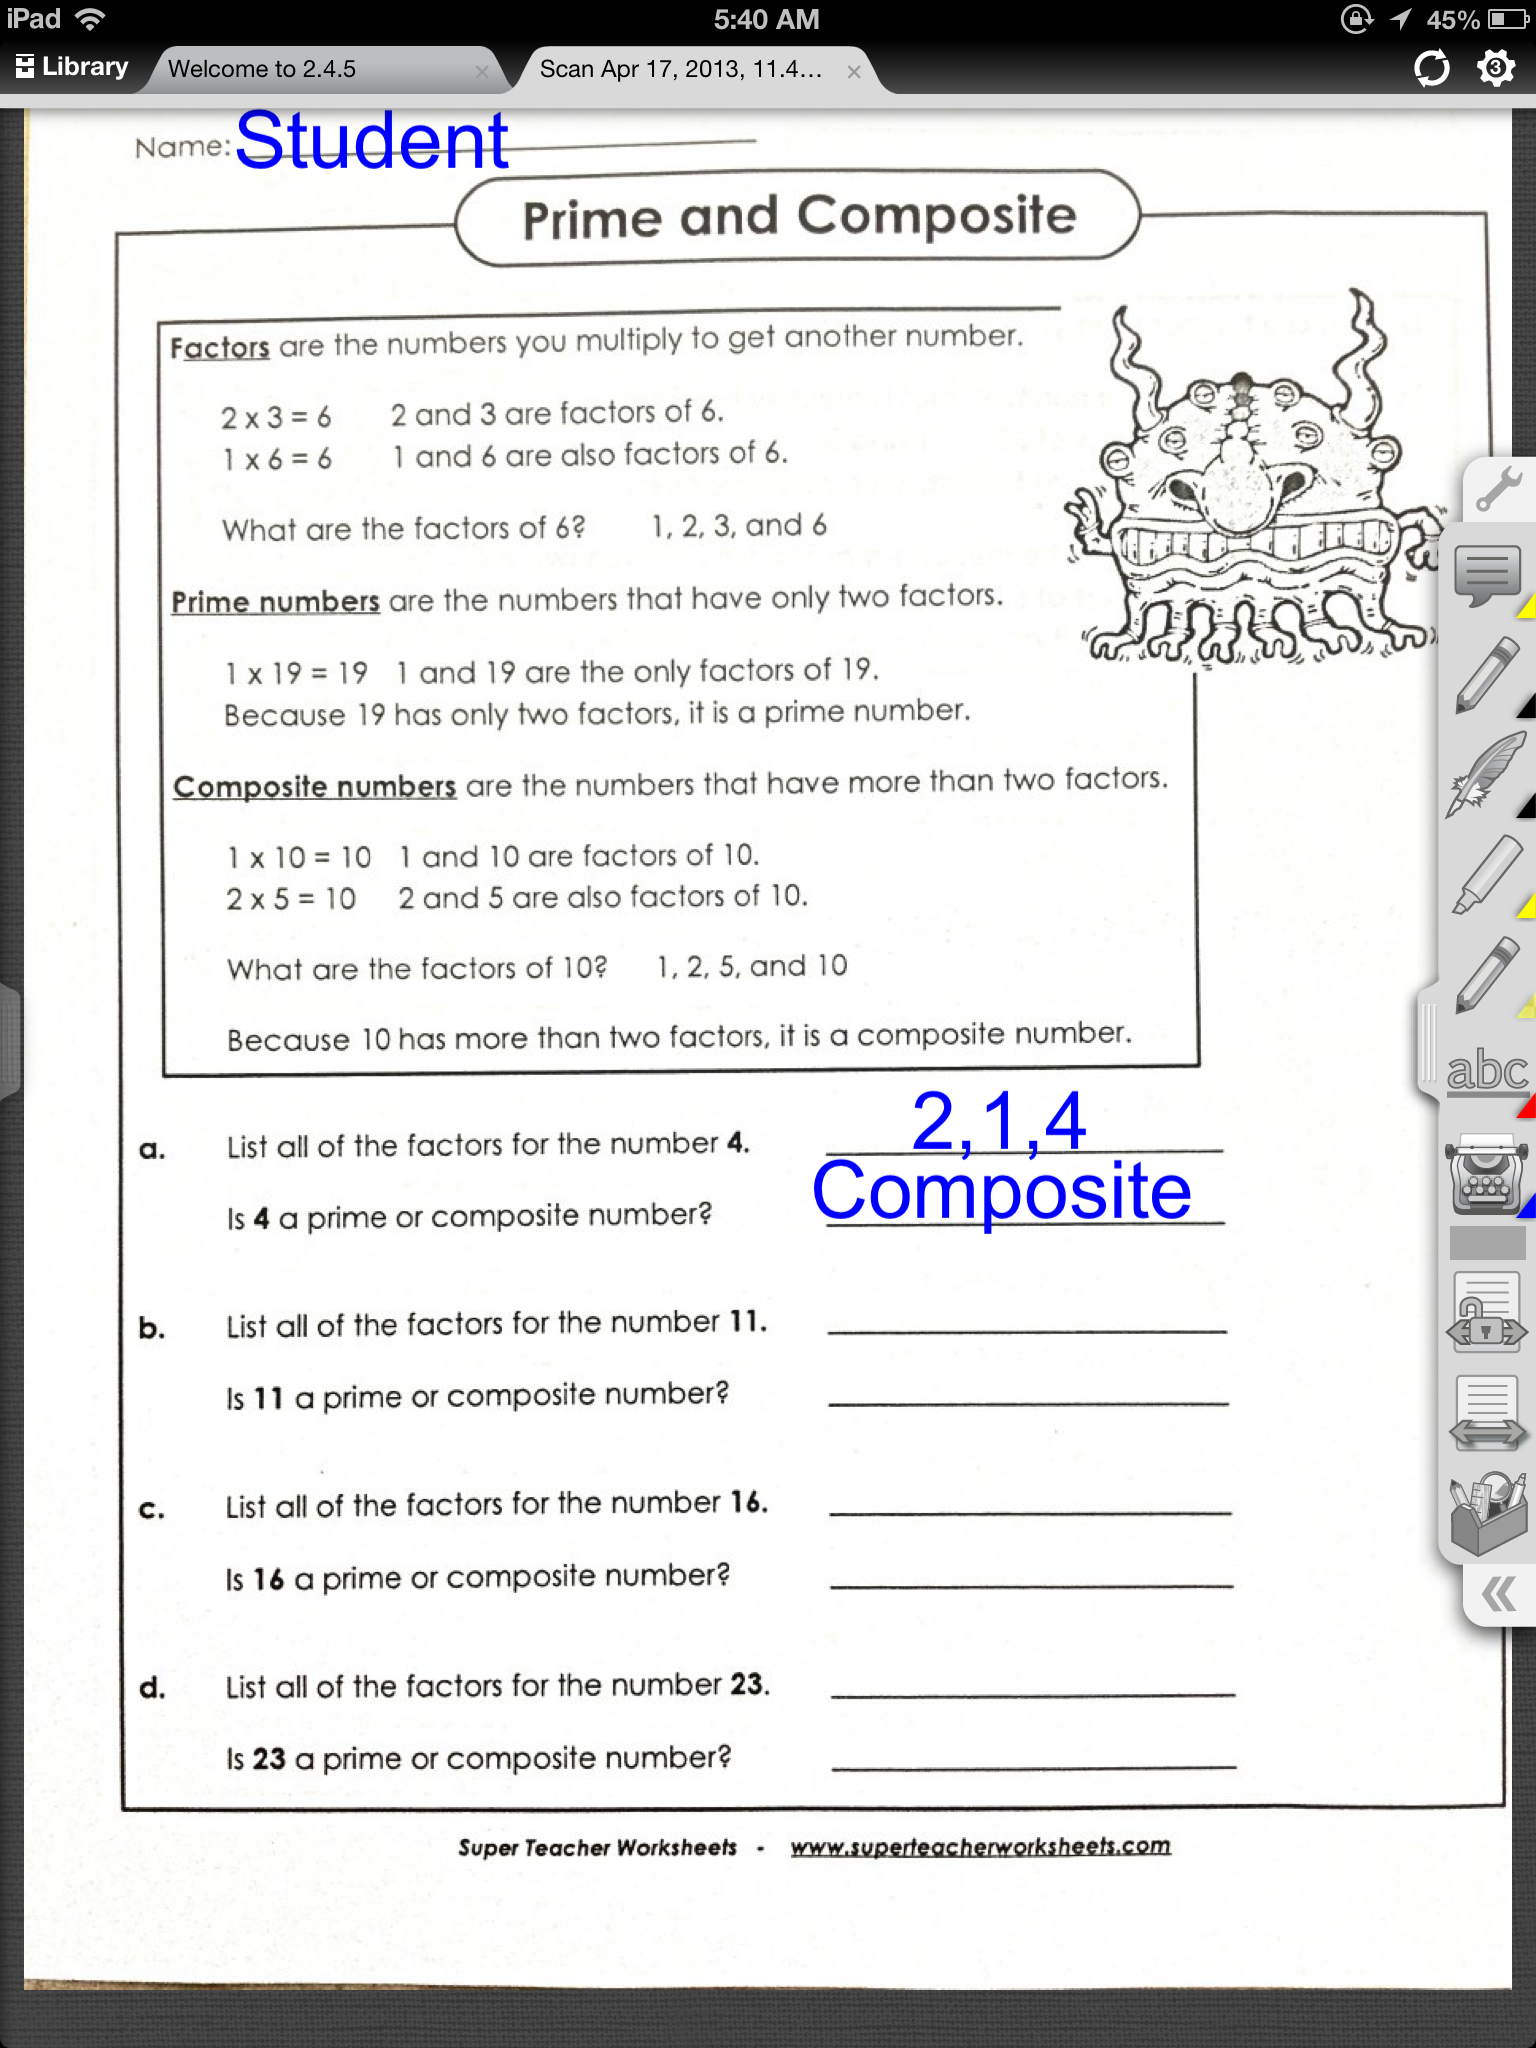 Printables Dysgraphia Worksheets worksheet dysgraphia worksheets kerriwaller printables iannotate app on sale for teacher appreciation week ots with pic1